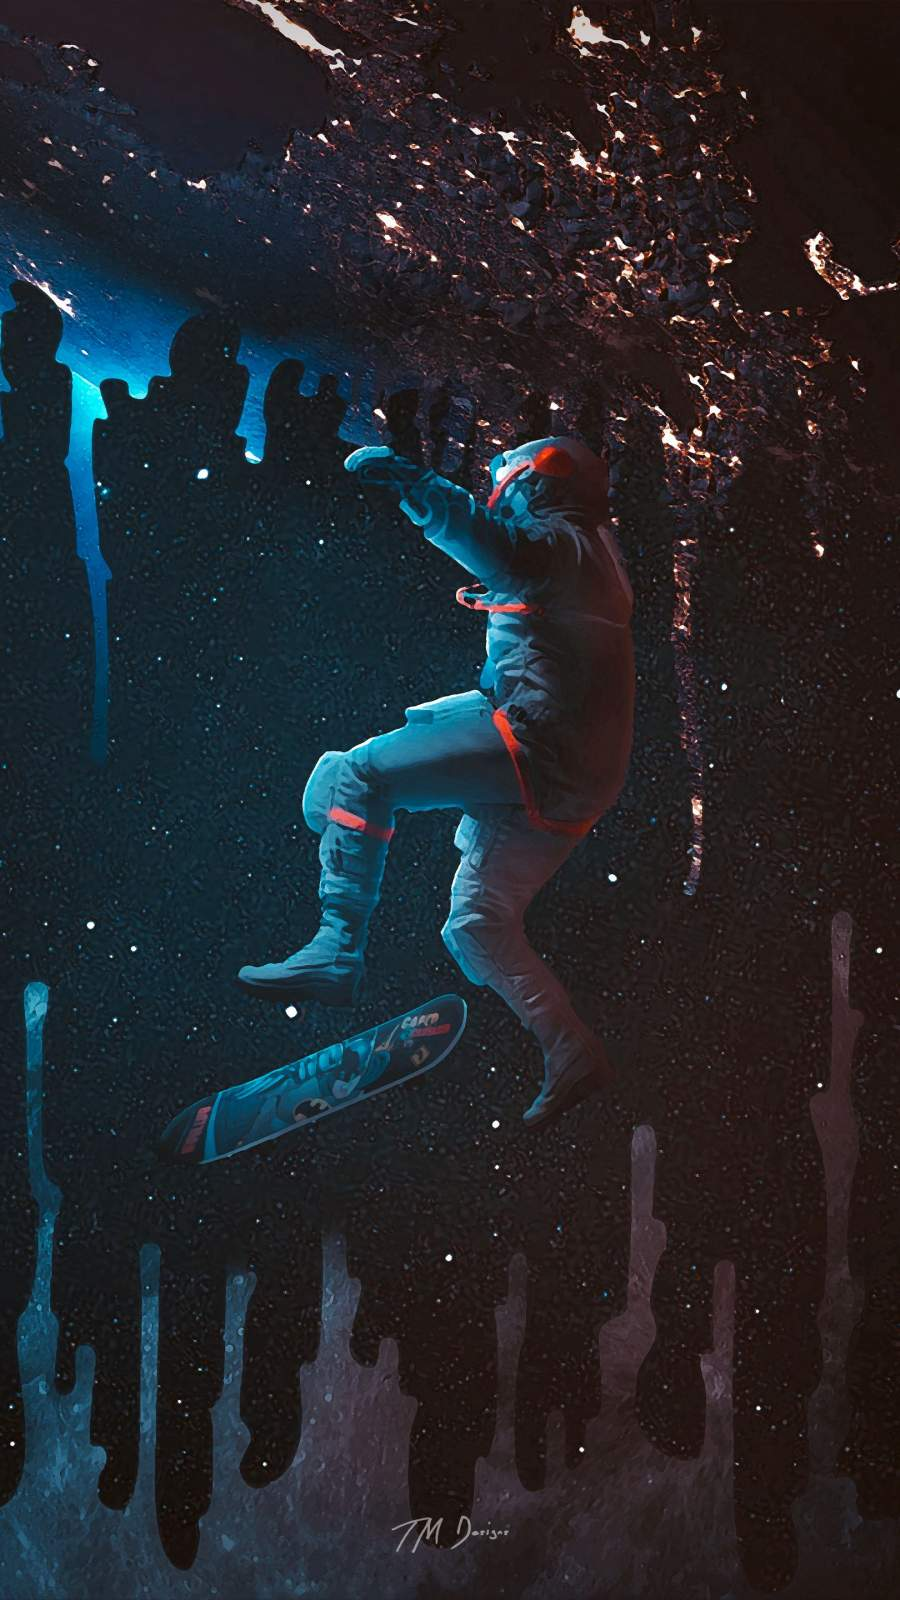 Space Skate iPhone Wallpaper